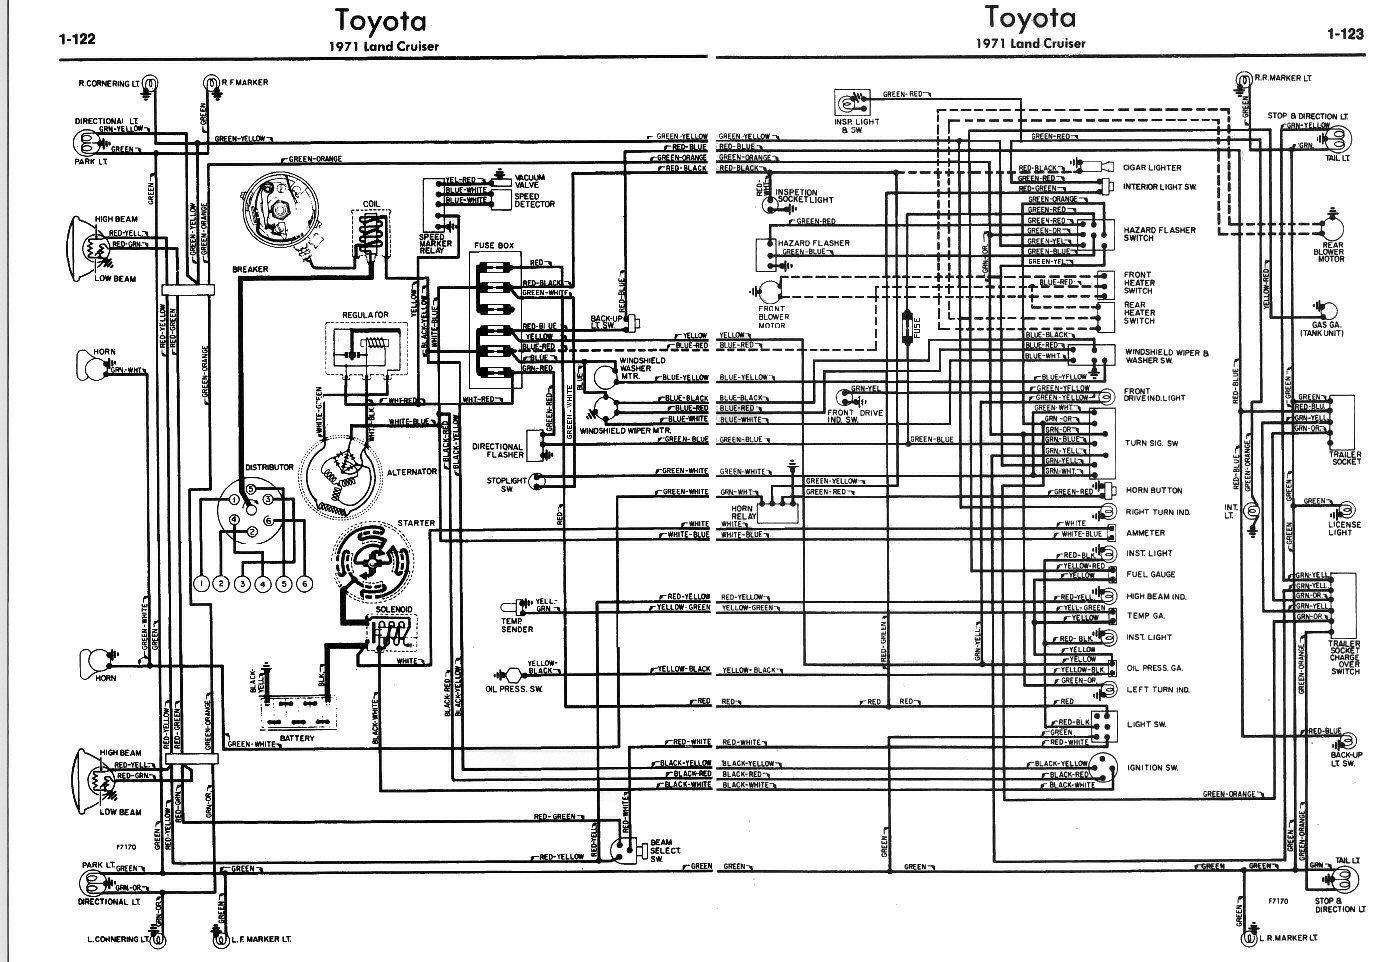 1971 1969 fj40 wiring diagram 1978 international scout wiring diagram toyota land cruiser wiring diagram at panicattacktreatment.co